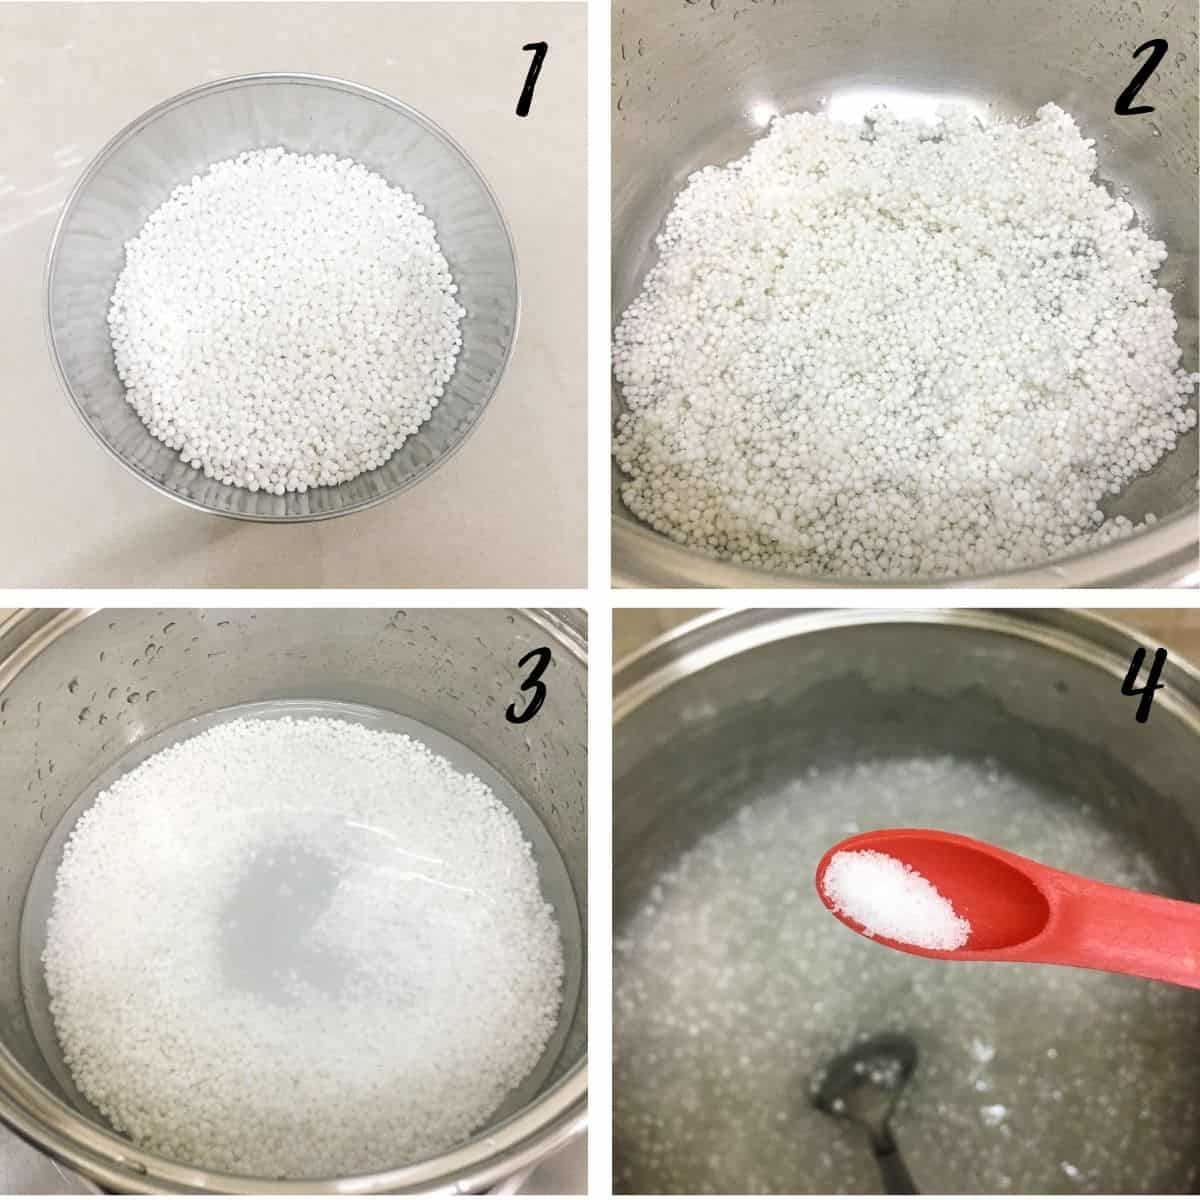 A poster of 4 images show a bowl of sago pearls, rinsed sago in a pot, sago in a pot filled with water and a spoon of salt